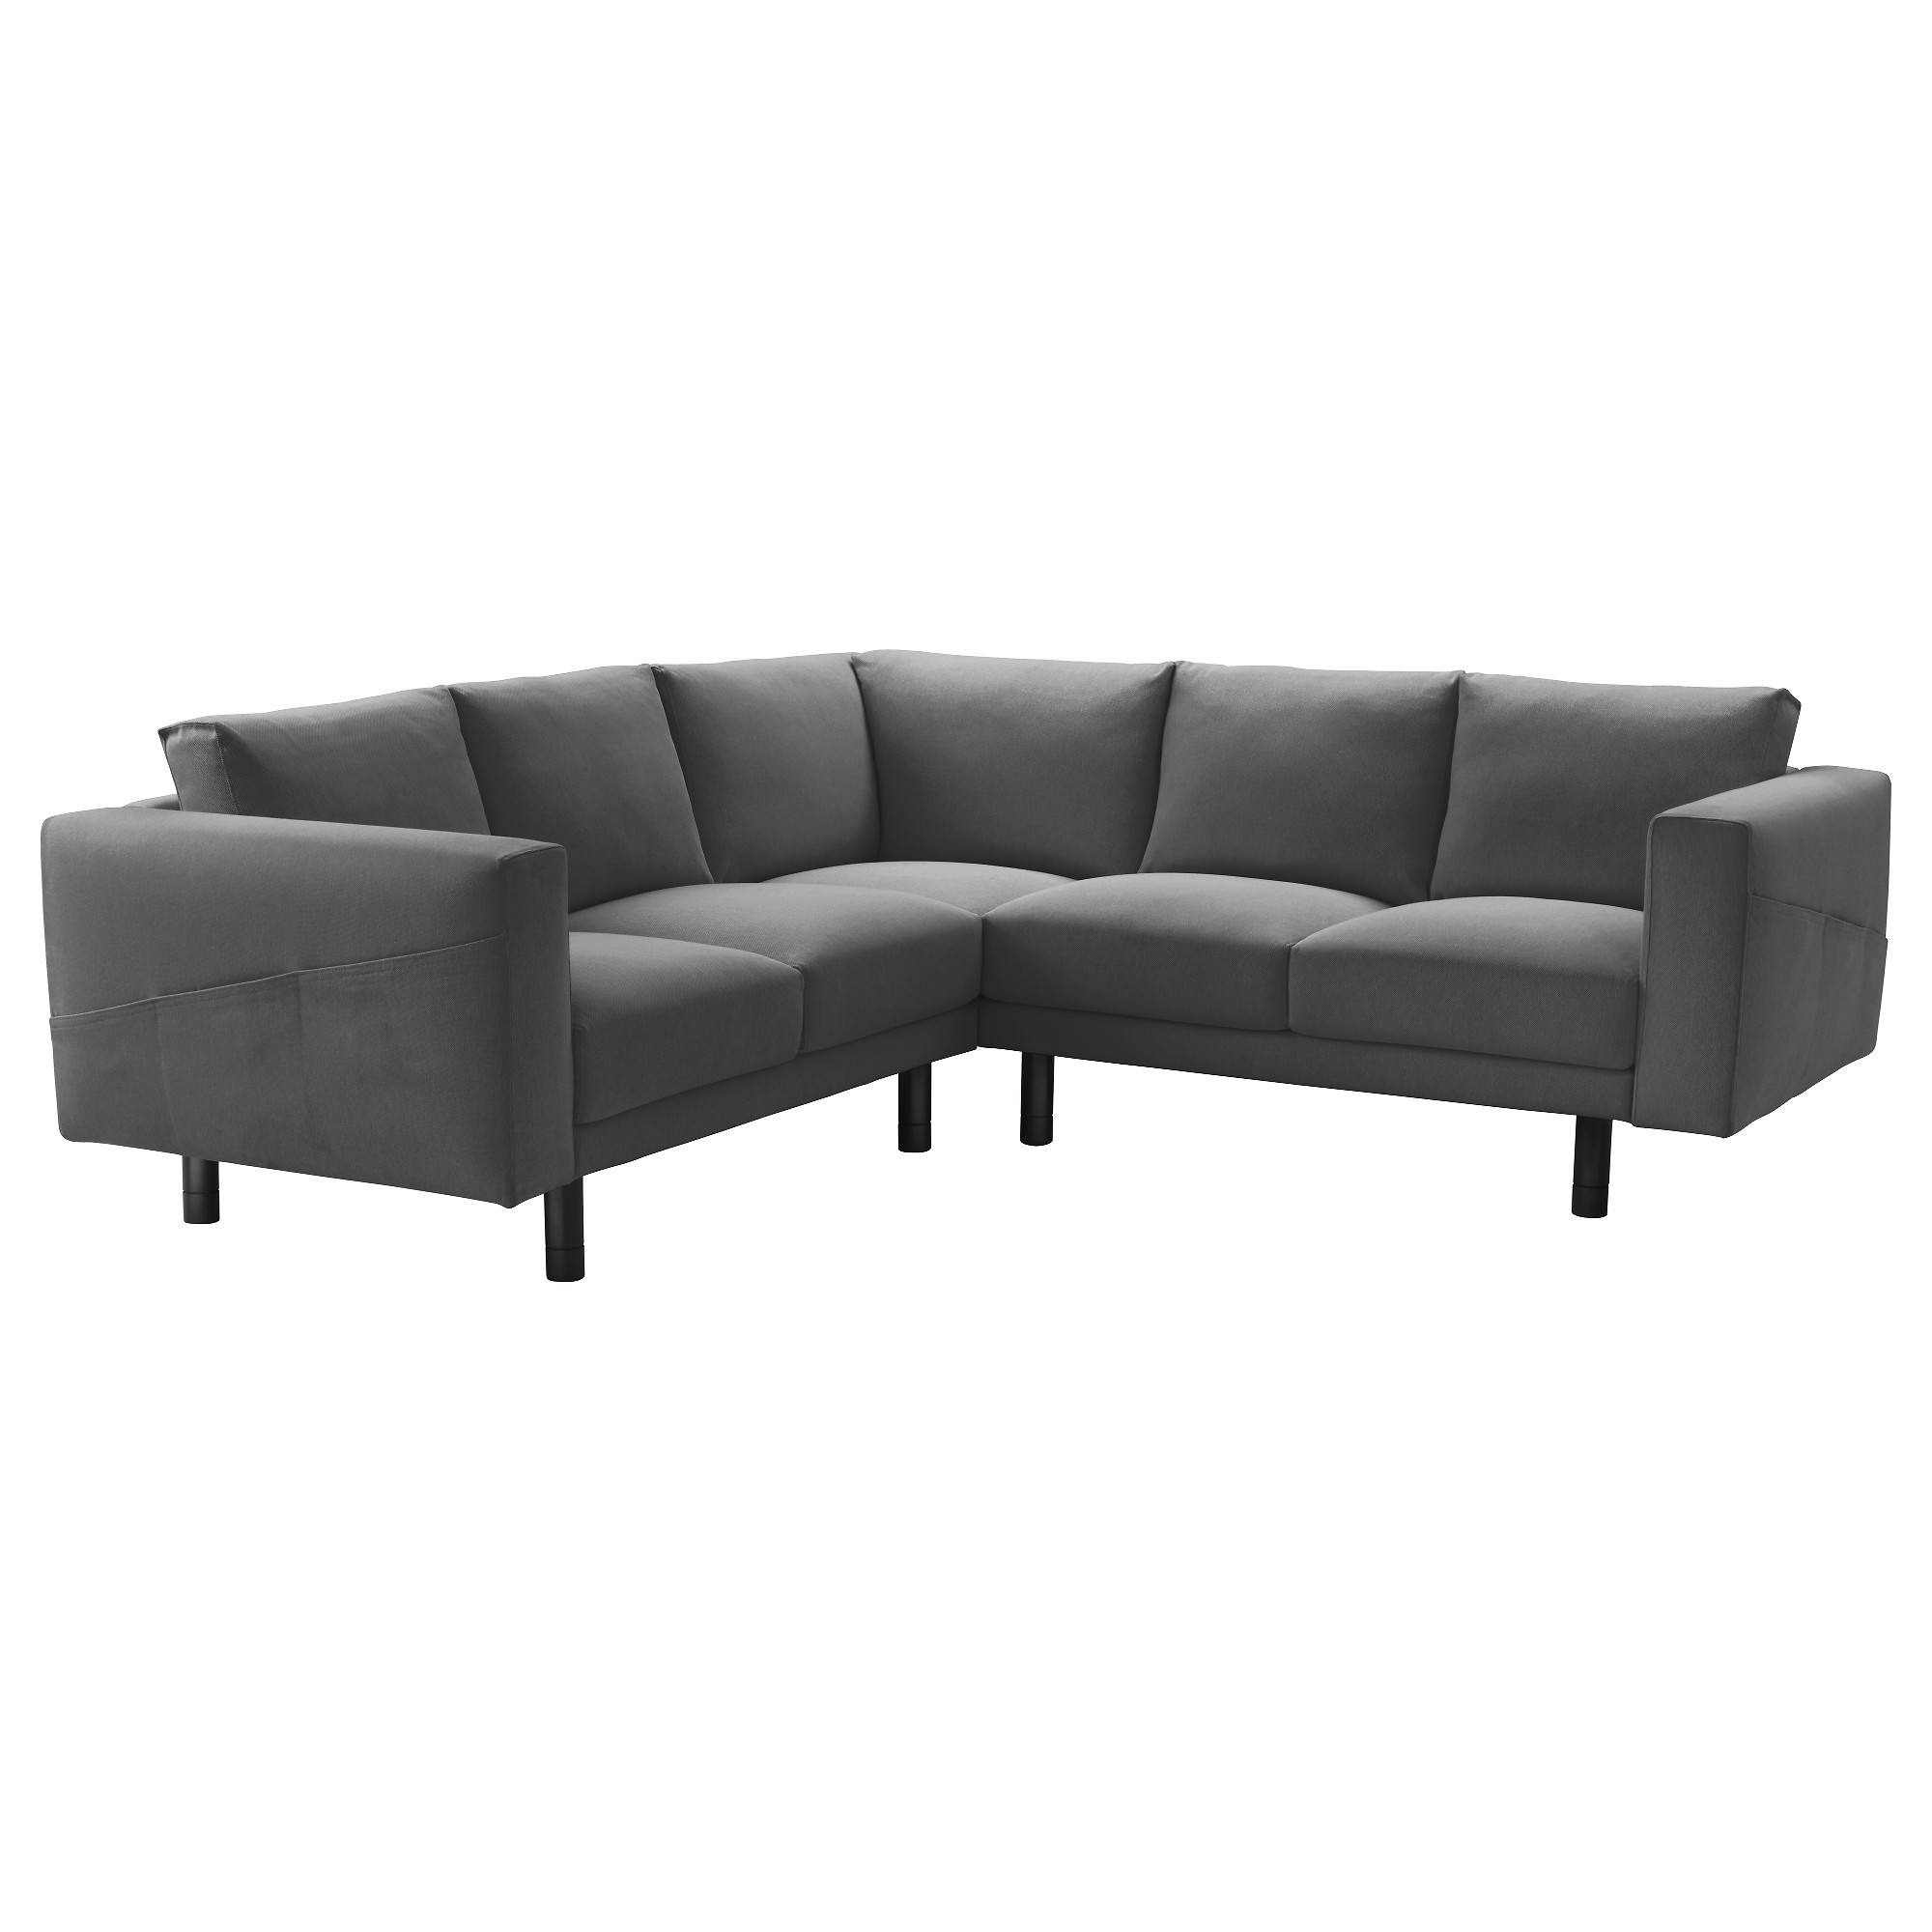 Fabric Sectional Sofas - Ikea with 2X2 Corner Sofas (Image 12 of 30)